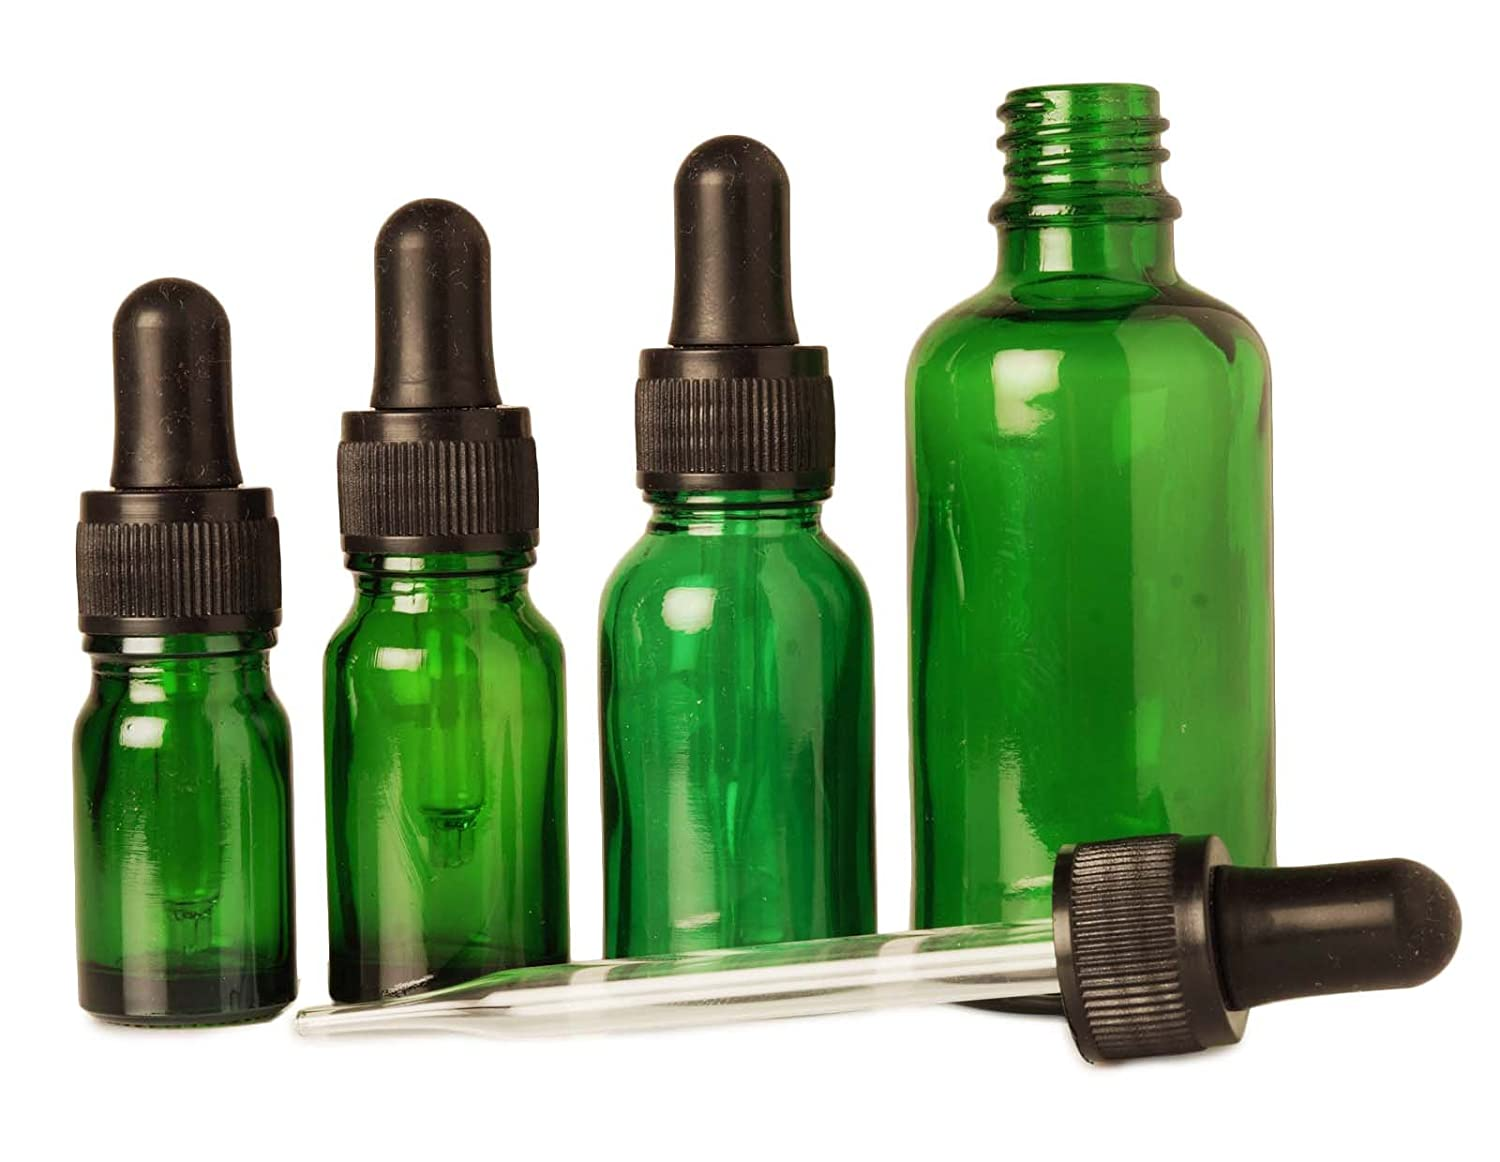 12 Pcs Refillable Serum Pipette Drop Bottles Wholesale Green Glass Eye Dropper Bottles Aromatherapy Essential Oils 10 ml Empty Bottles MT Bottles & Jars